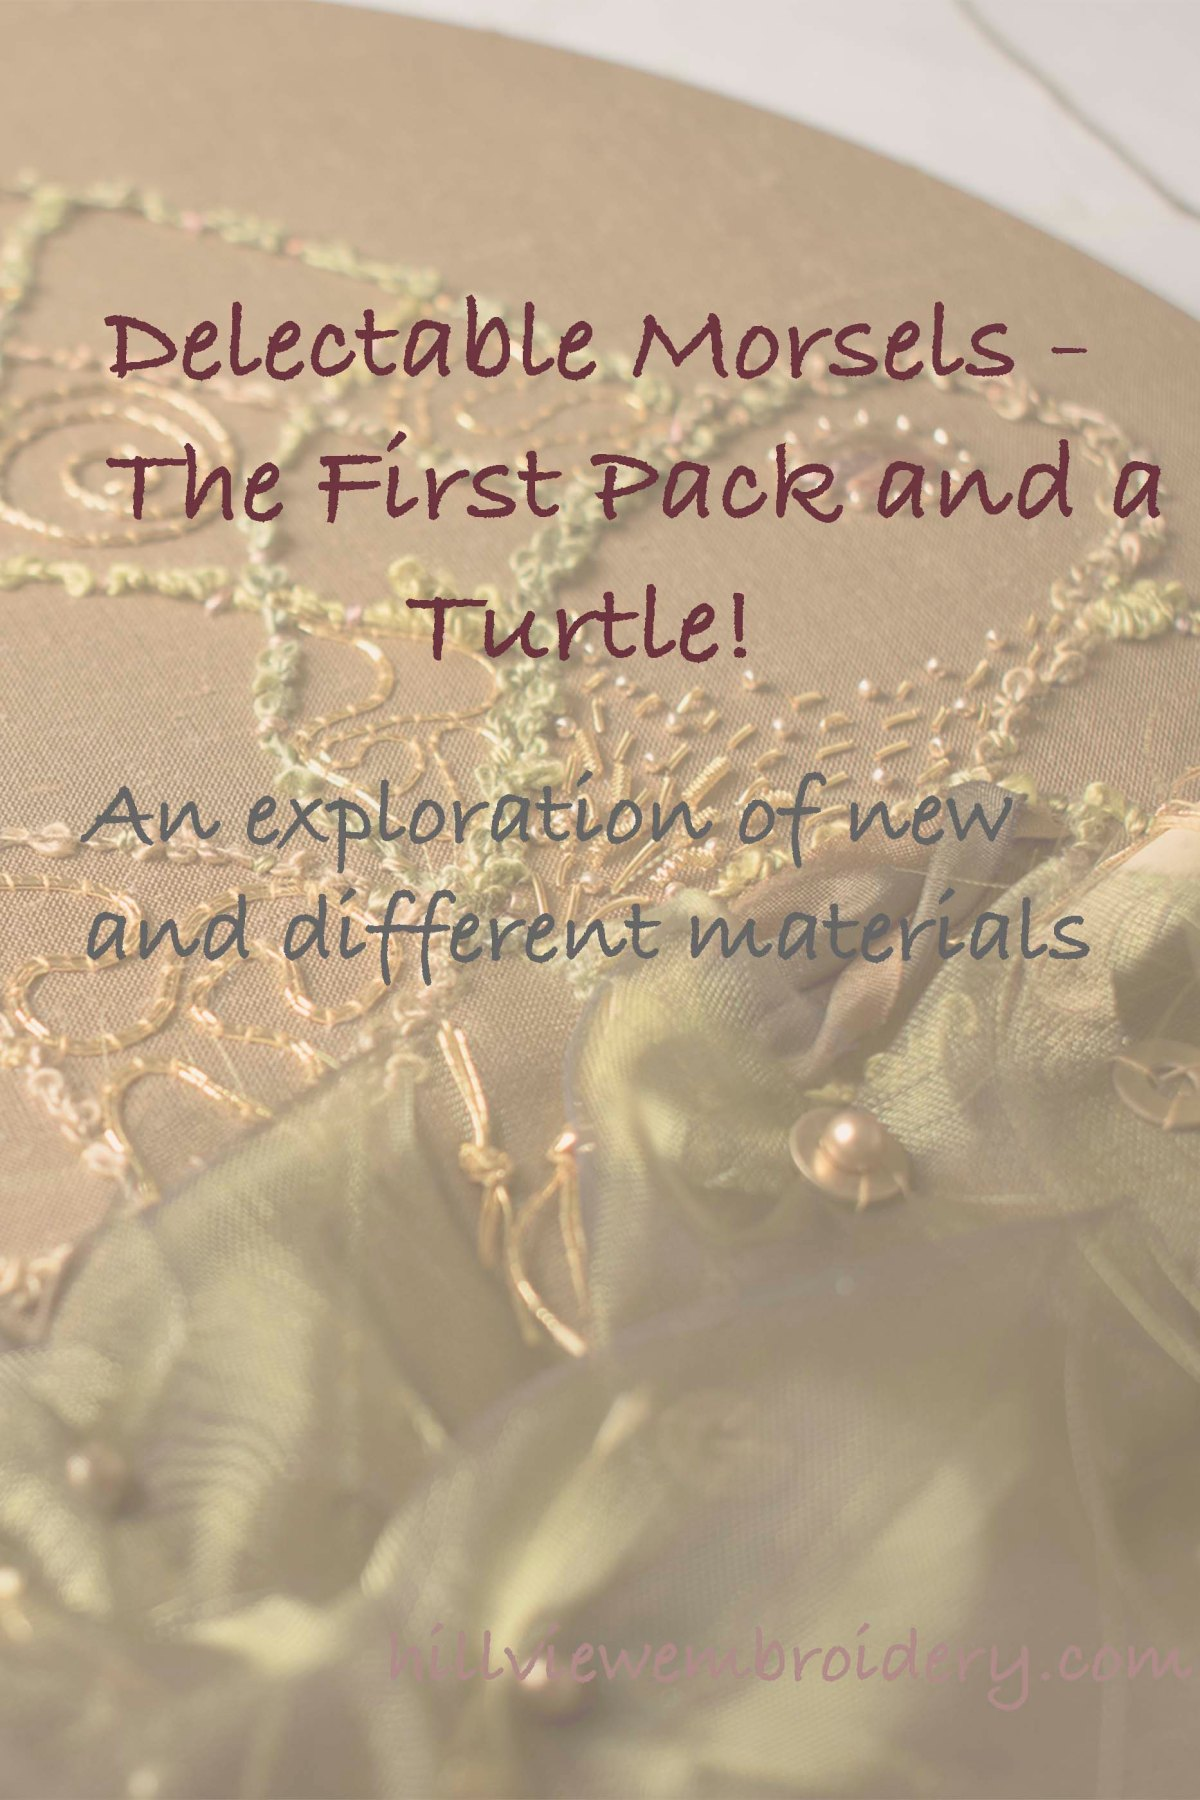 The Delectable Morsels pack gives a variety and interesting range of new materials to use - see how I used them!